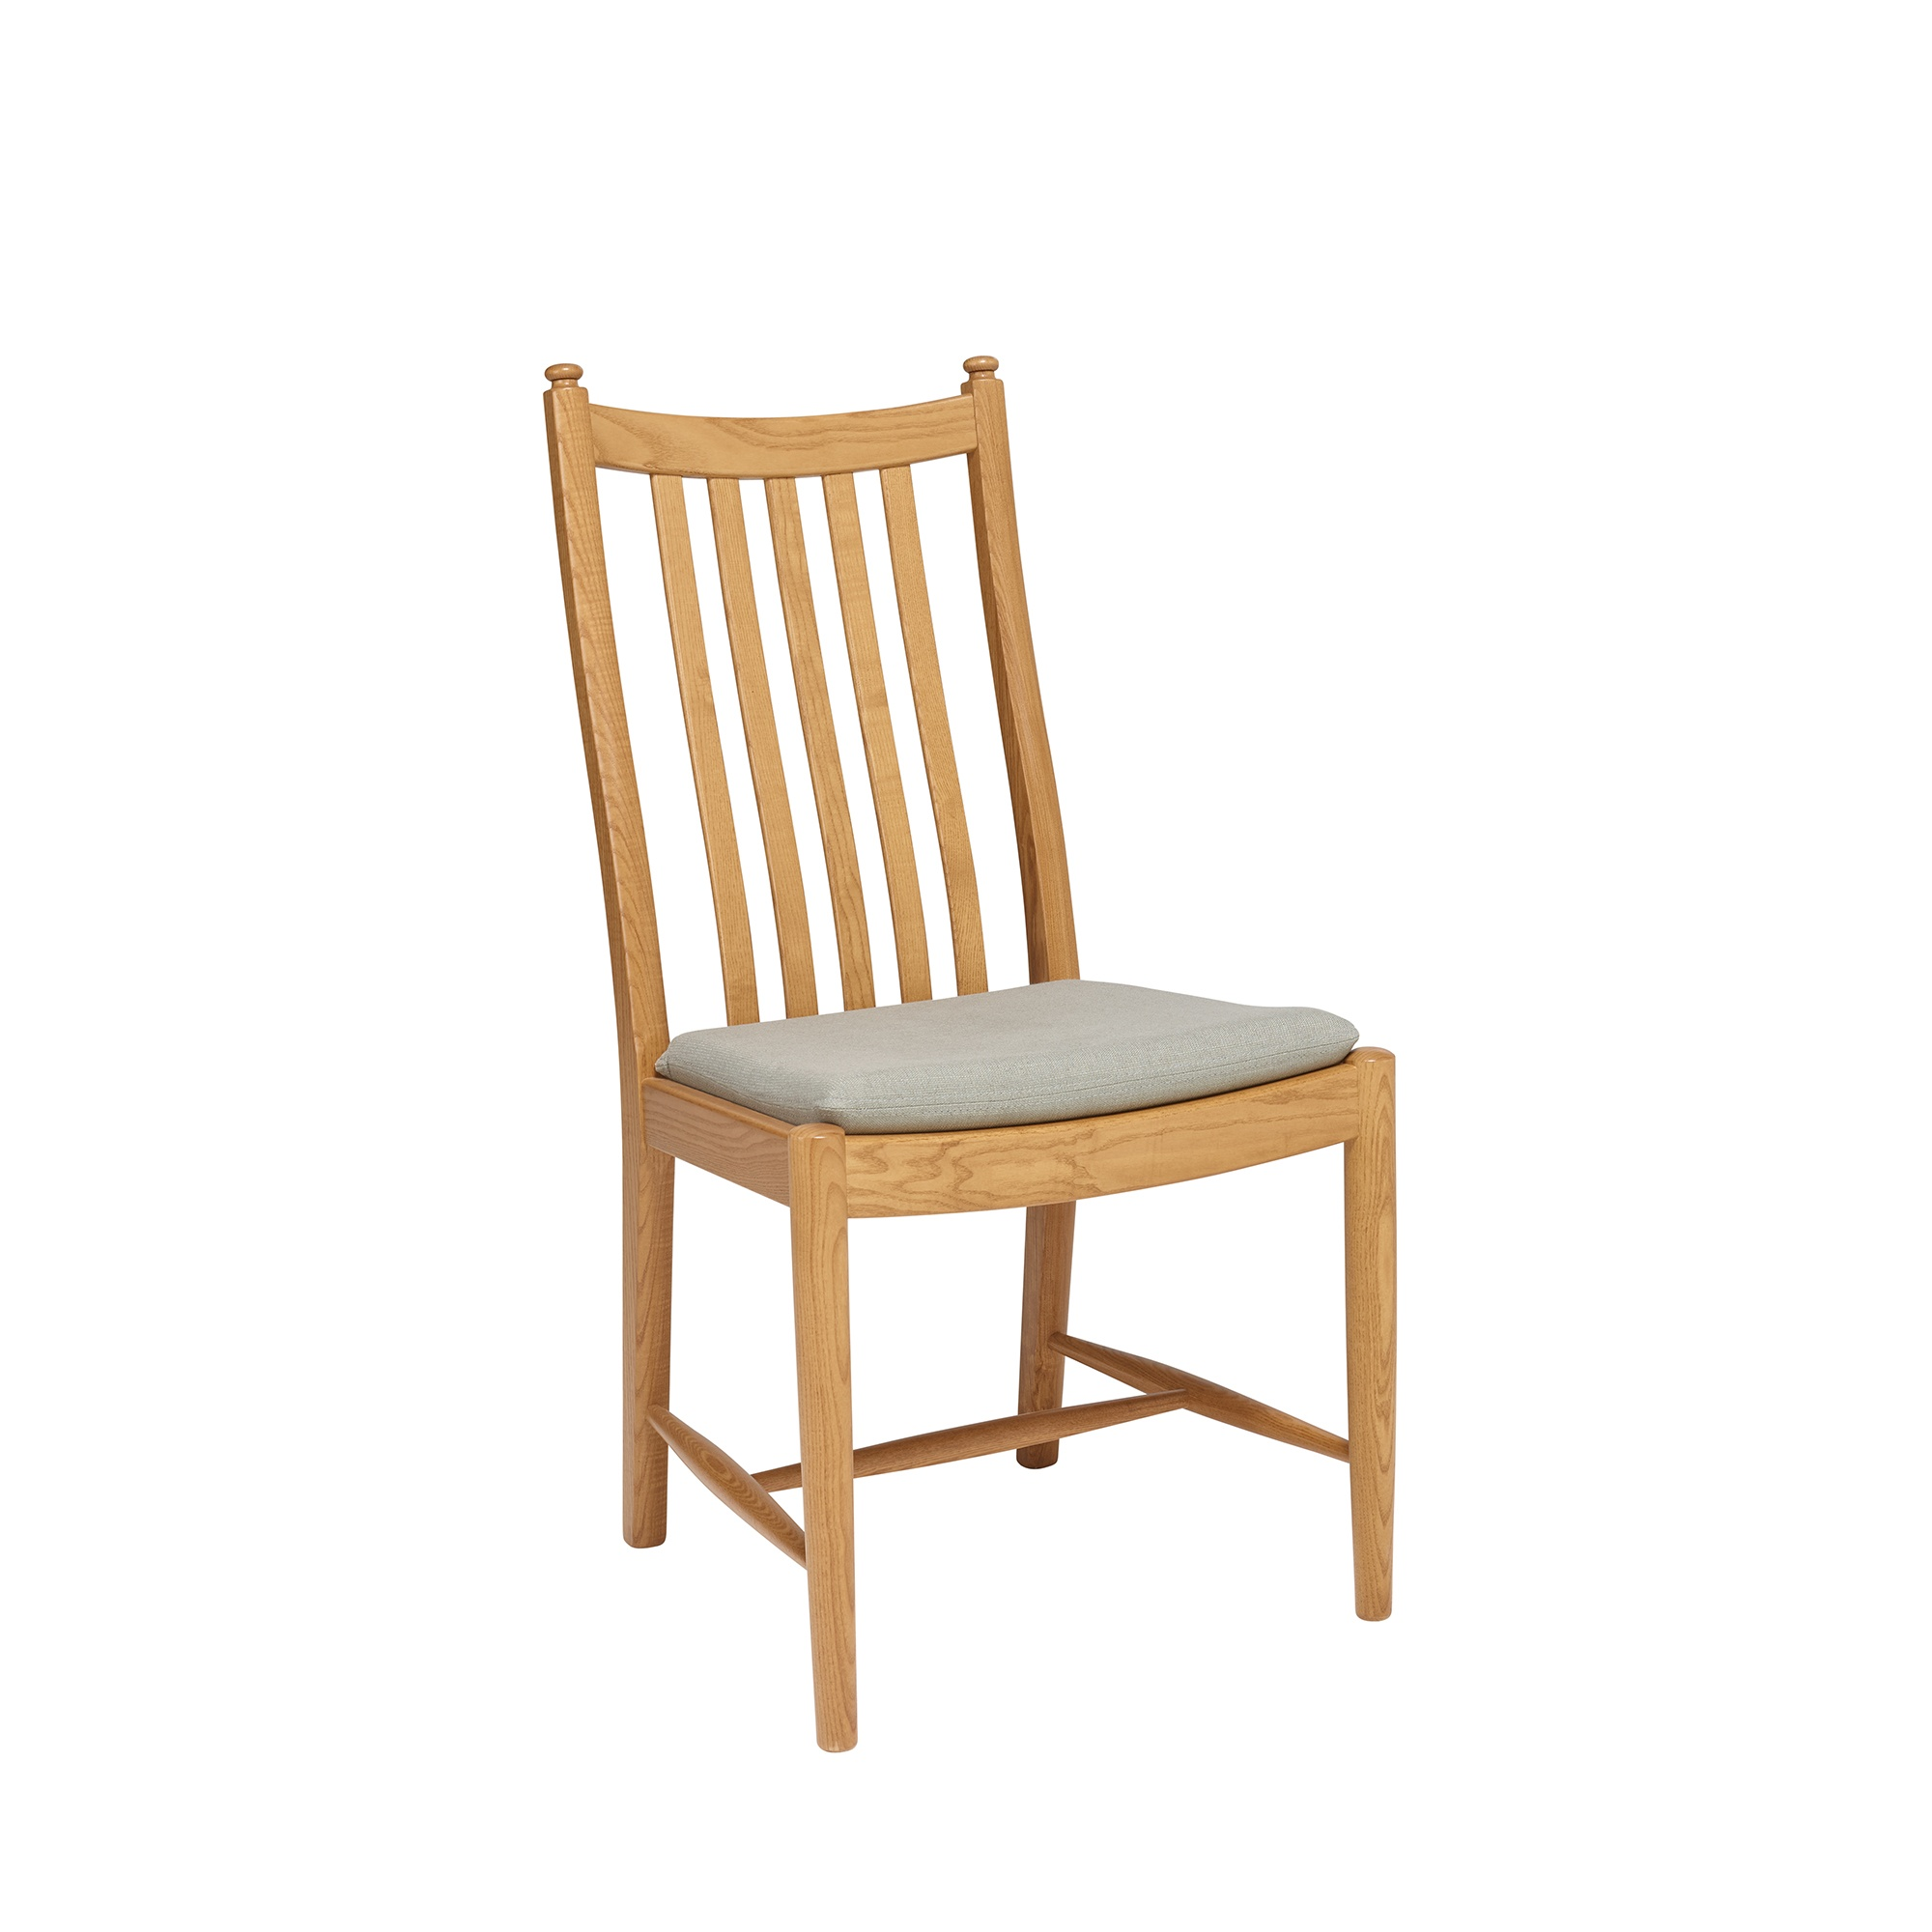 Classic Chair Ercol Windsor Penn Classic Dining Chair